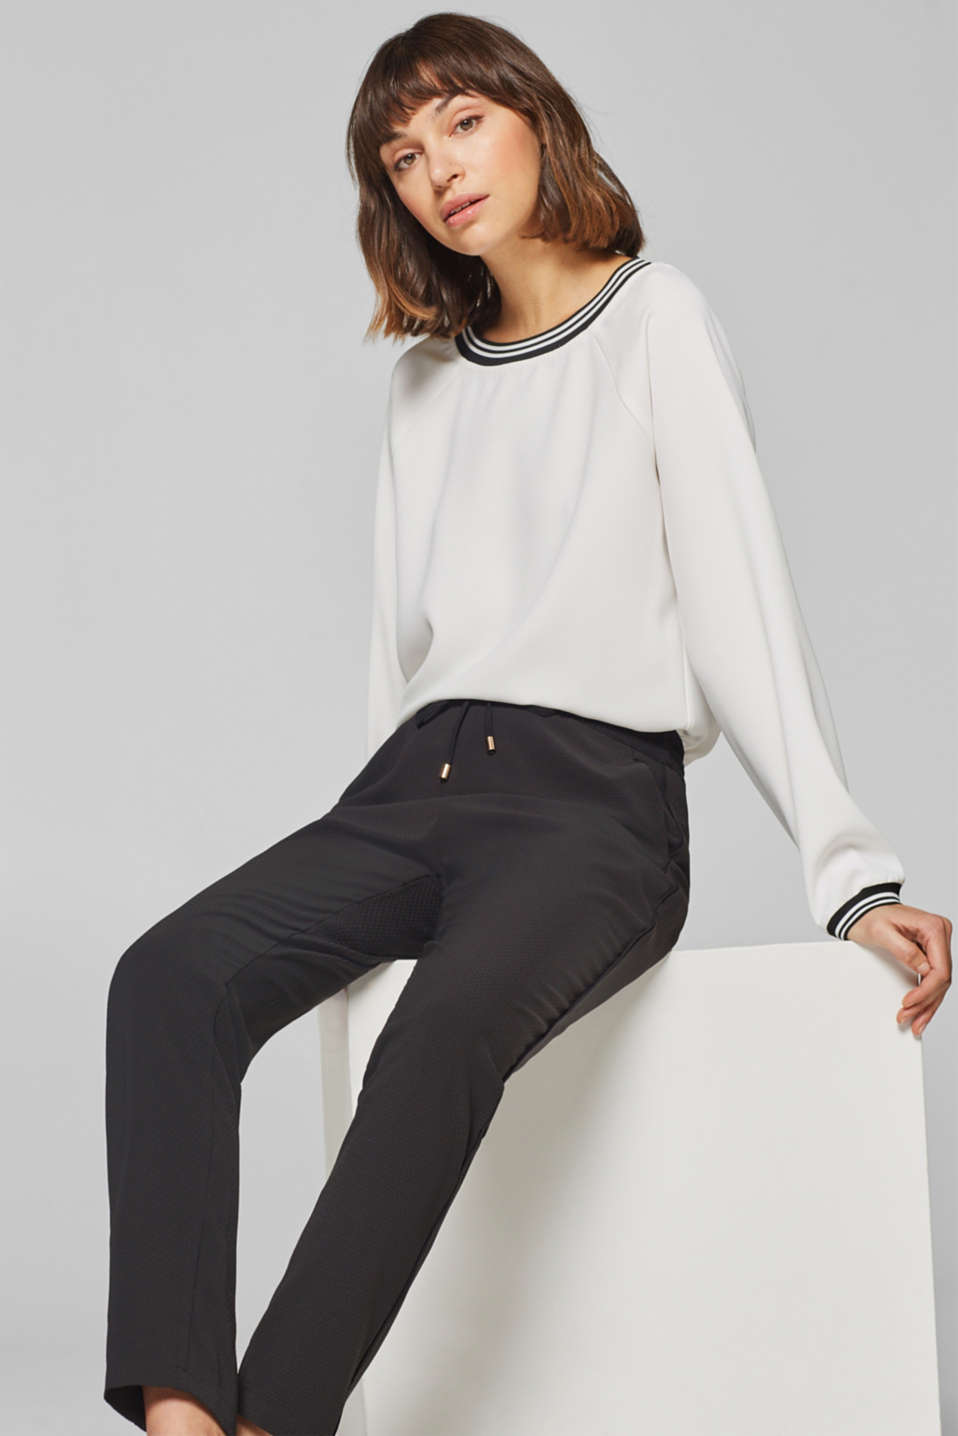 Esprit - Textured trousers in a tracksuit bottoms style